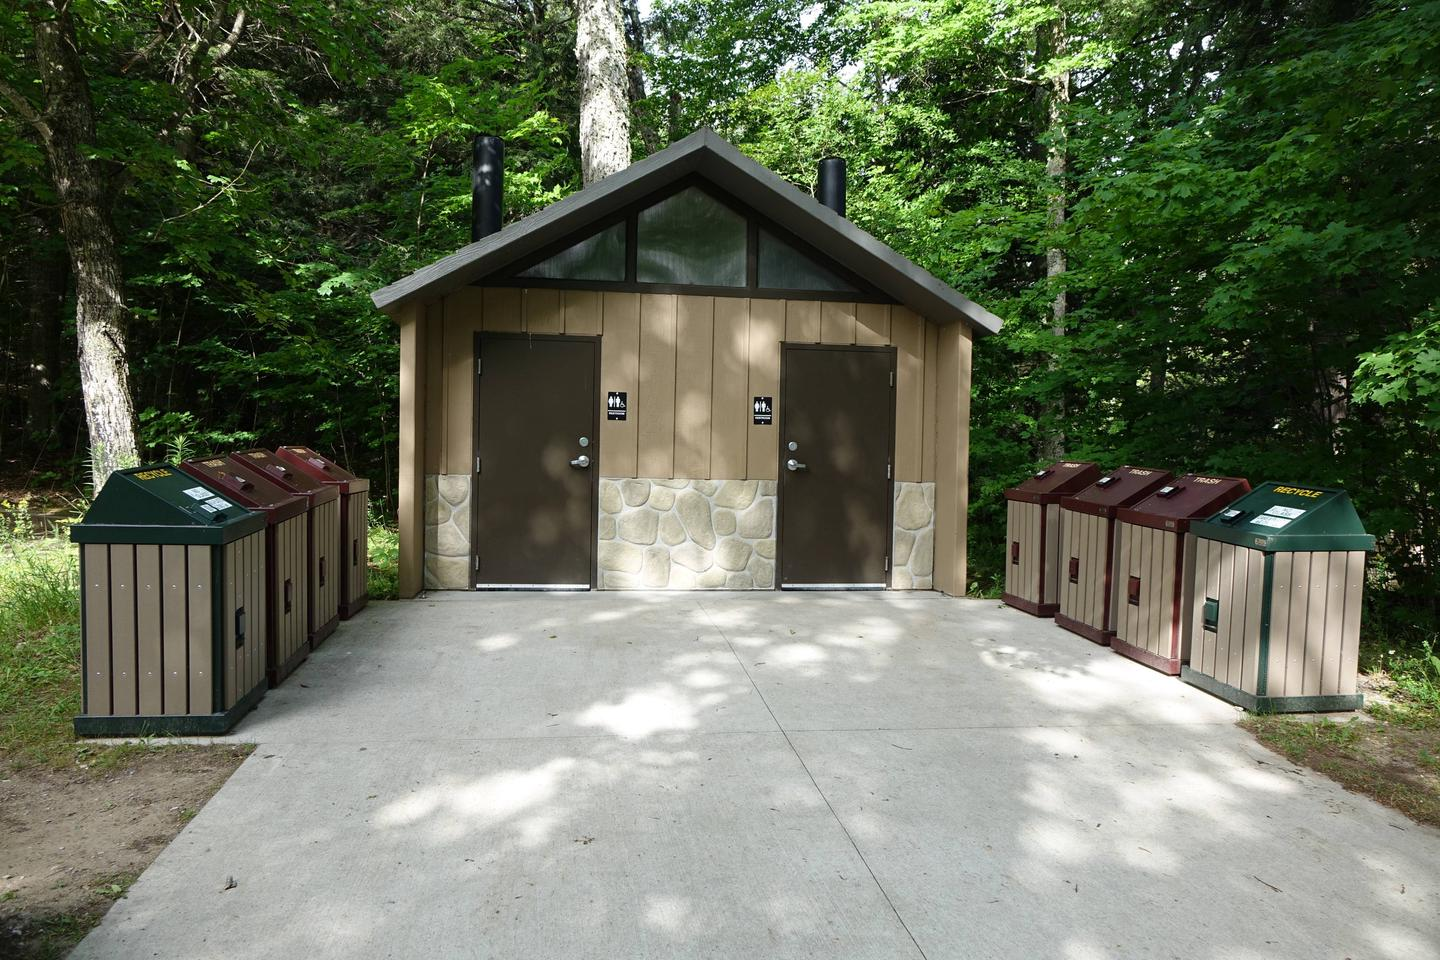 Vault bathrooms at Little Beaver Lake campground.Vault Bathrooms